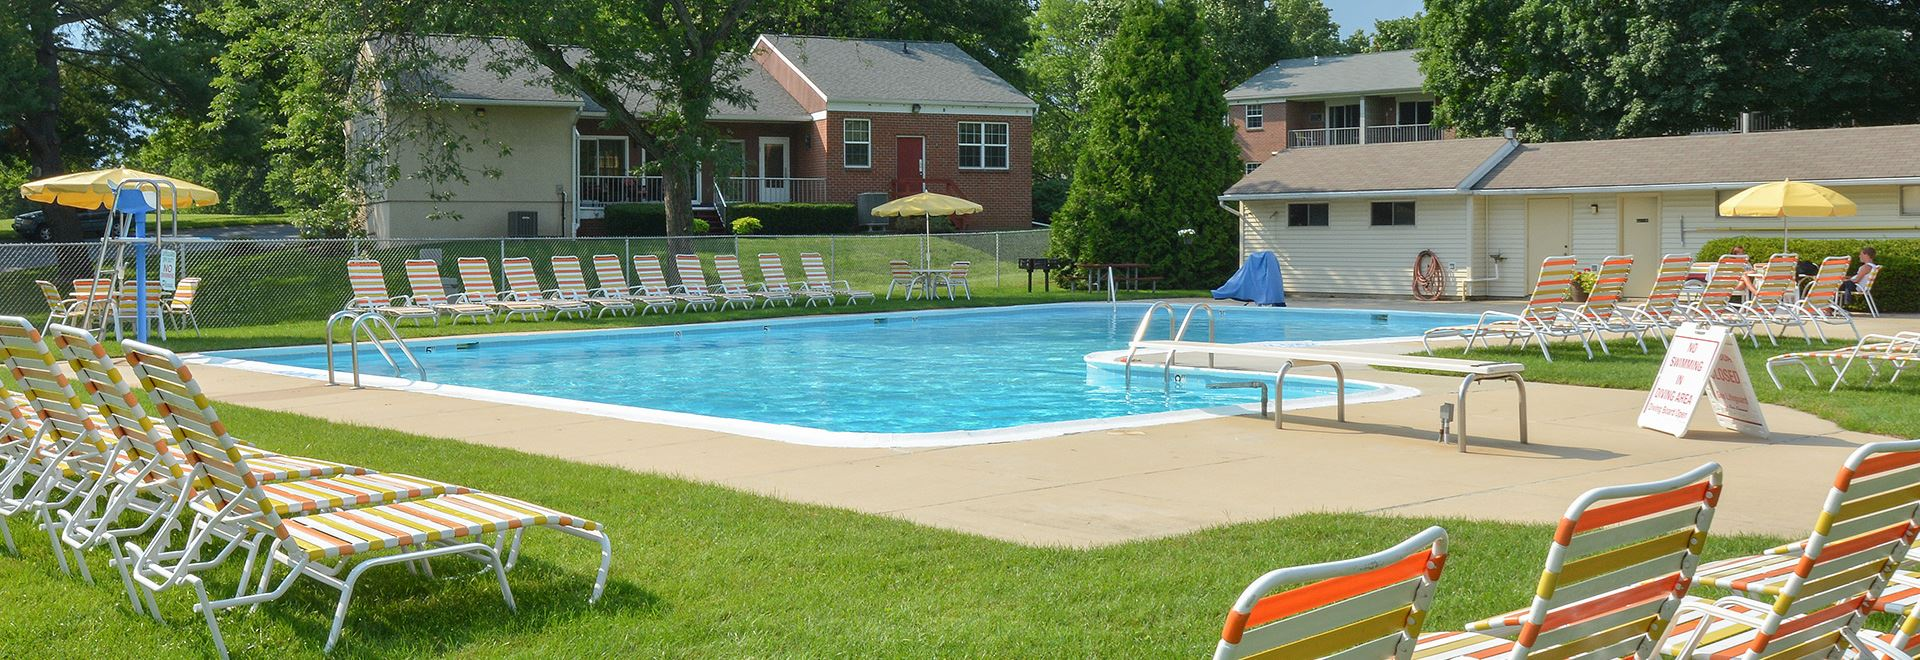 Apartments In Lancaster, PA For Rent Now - Manor Communities